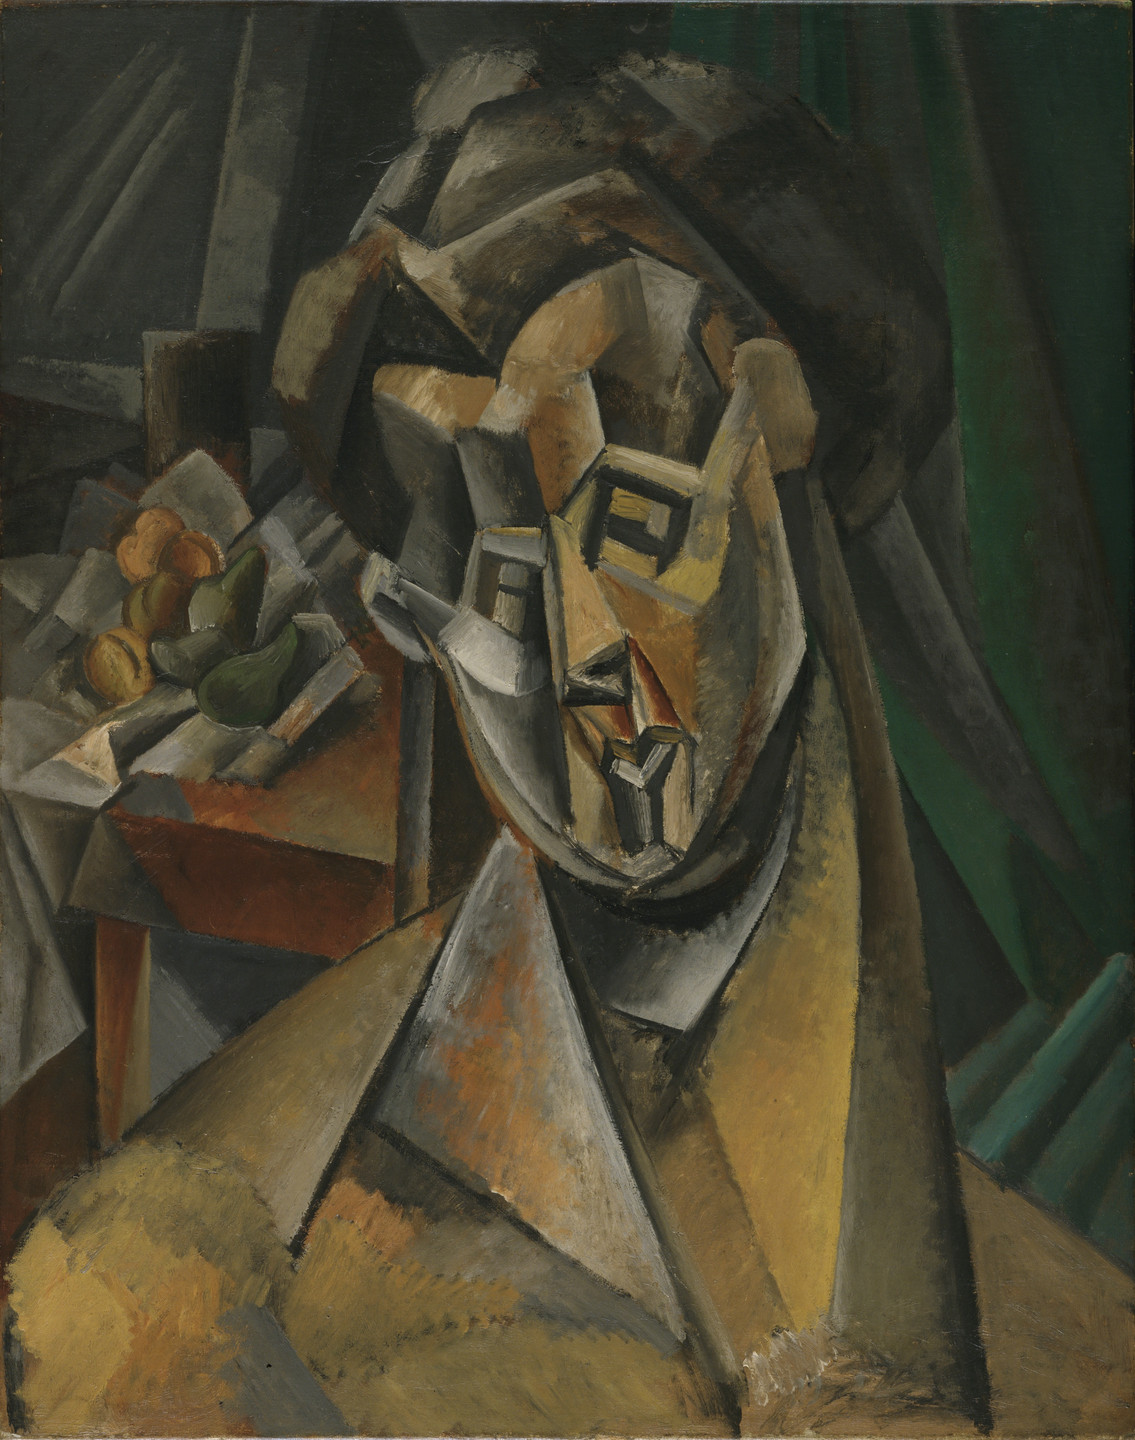 Pablo Picasso. Woman with Pears. Horta de San Joan, summer 1909